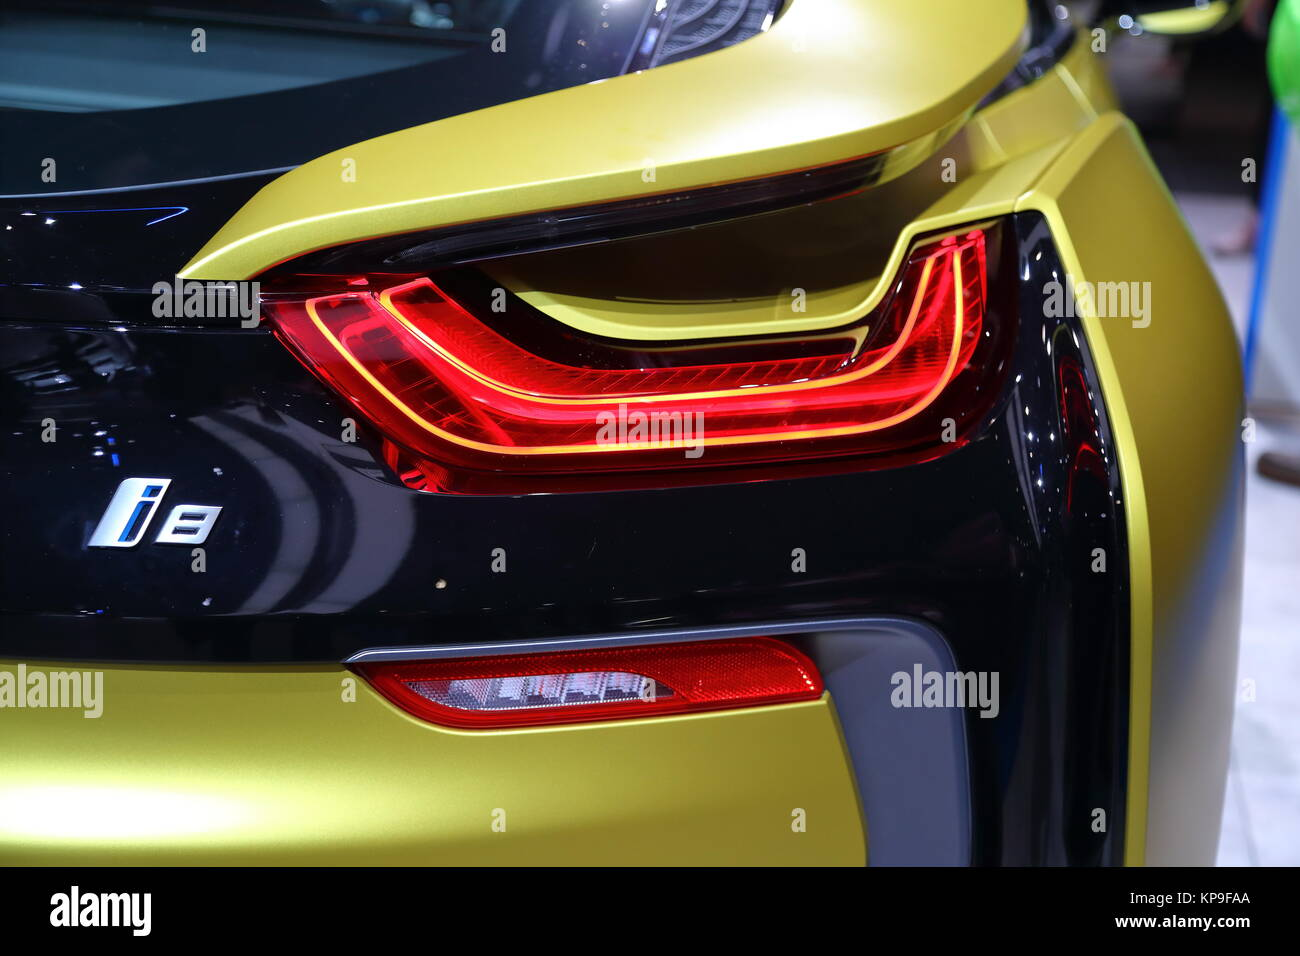 The Tail Light Of A Bmw I8 Electric Sportscar At The Frankfurt Stock